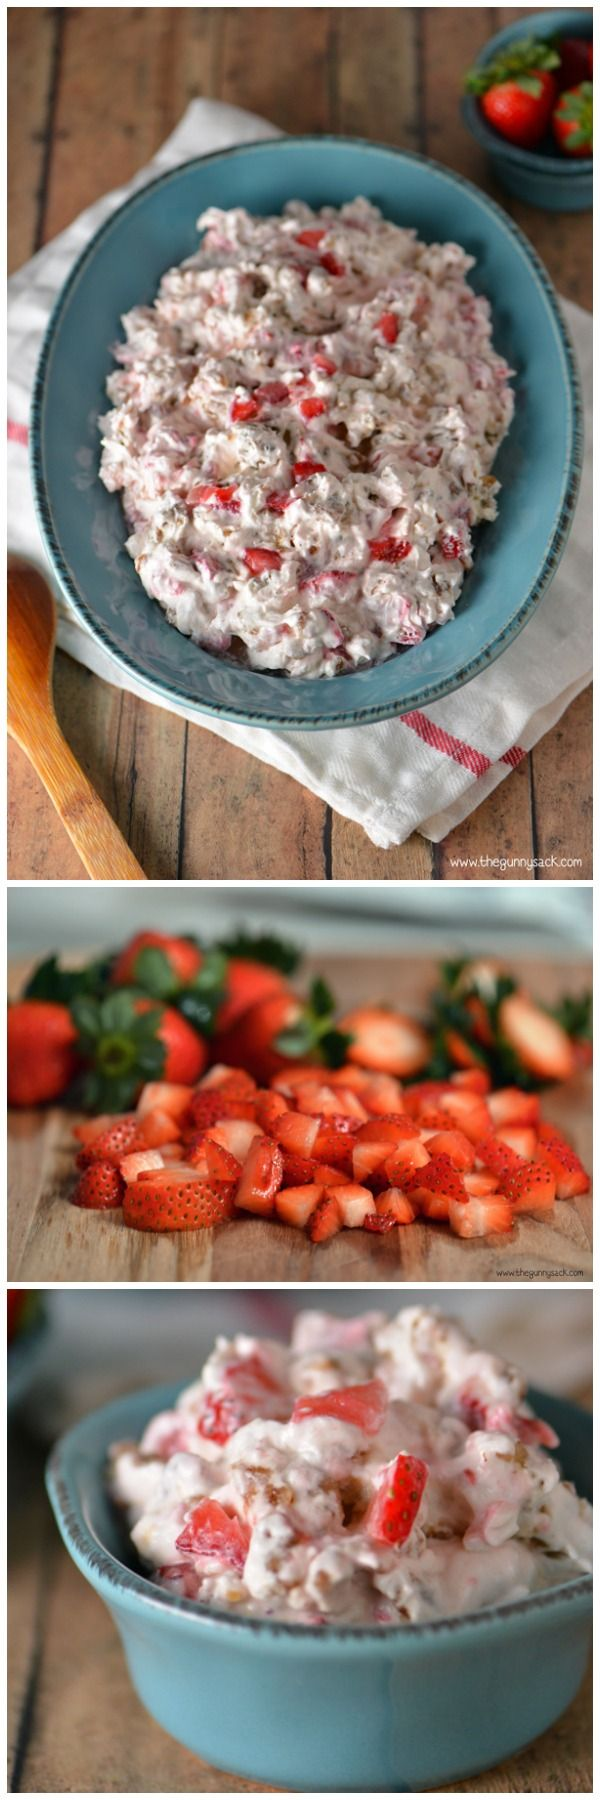 Strawberry Pecan Pretzel Salad is one of my family's favorite holiday recipes. This recipe is creamy and crunchy, salty and sweet. #client